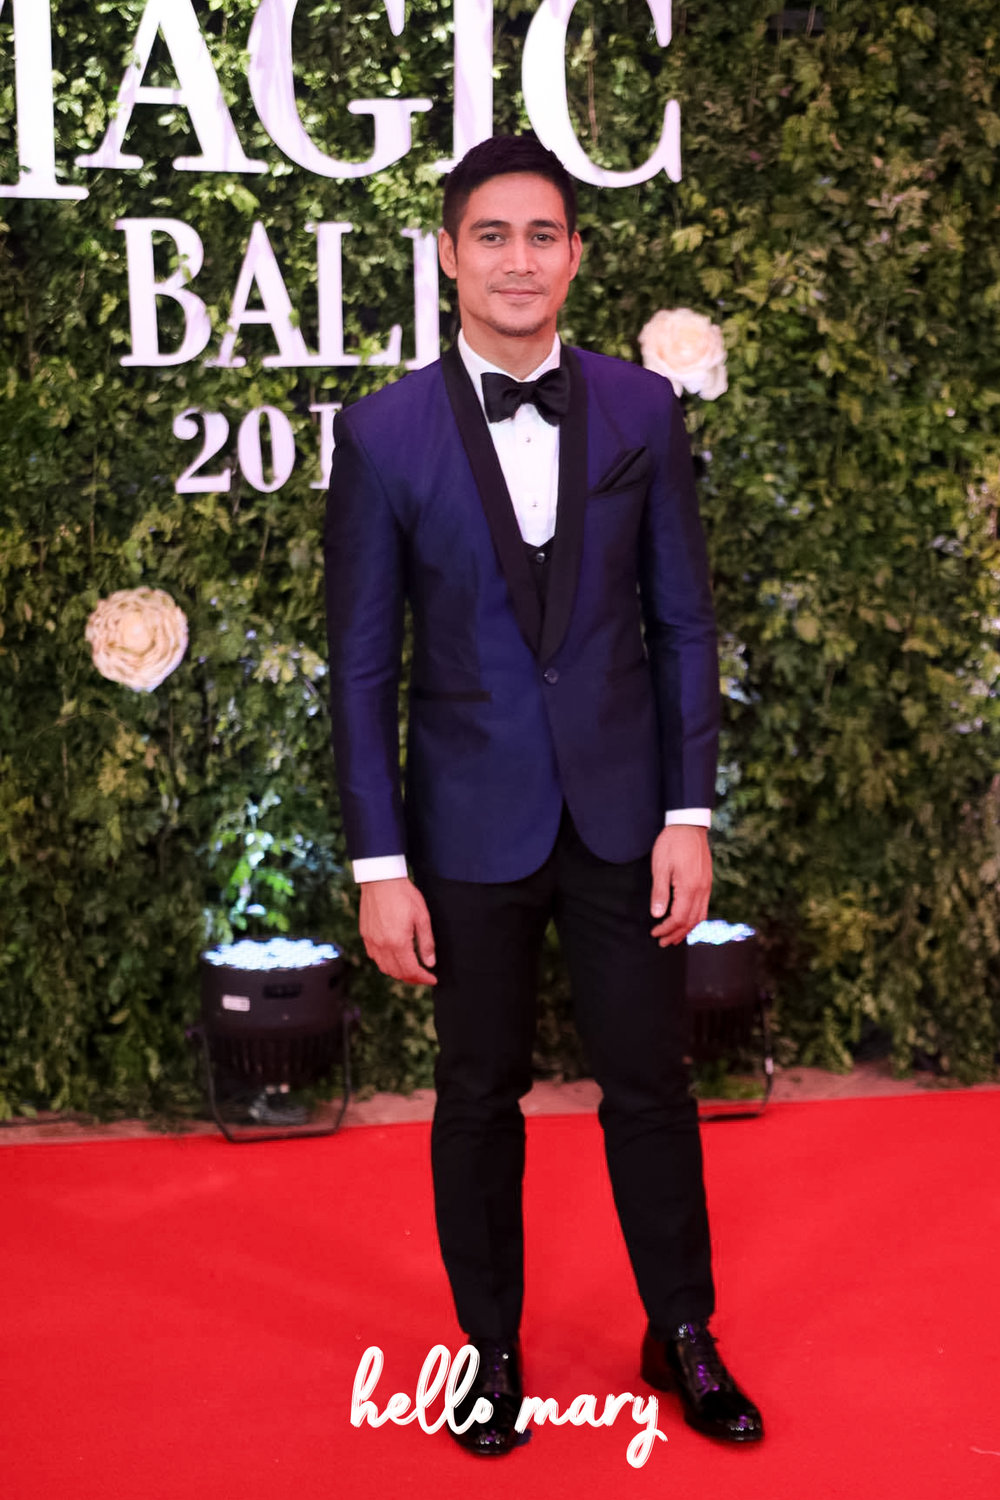 Piolo Pascual - Oh, Papa P. Will there ever be a time you will stop looking so dashing?